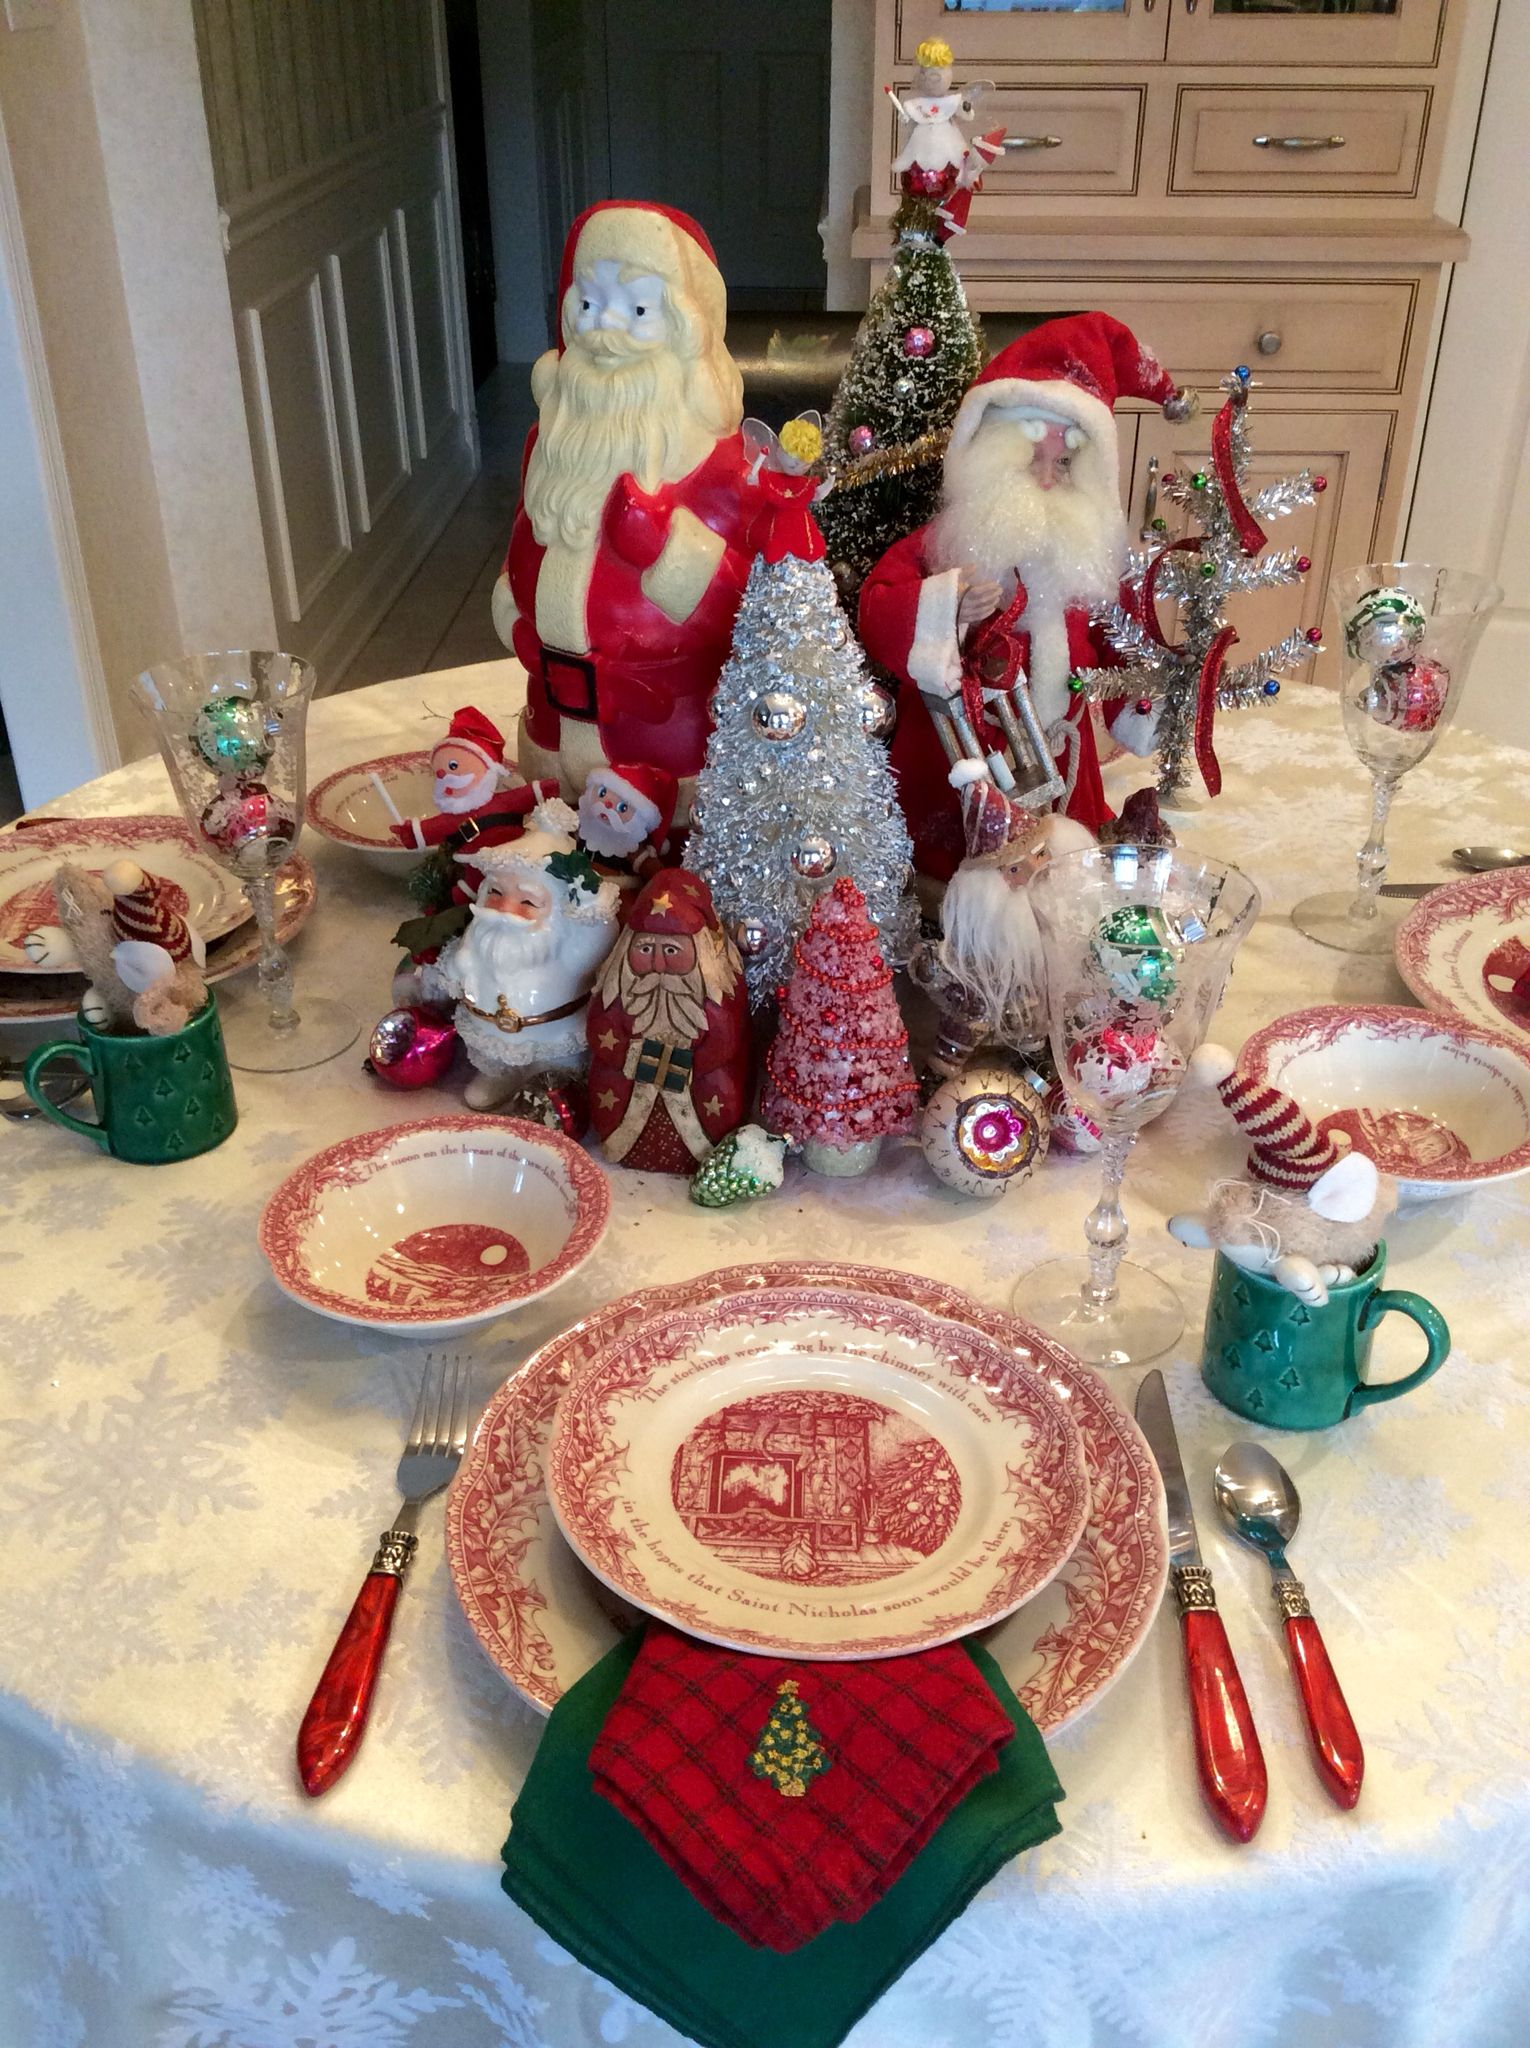 Twas The Night Before Christmas Red Transferware Dishes By Johnson Brothers Home Goods Retro Christmas Tree Christmas Table Decorations Christmas Tableware